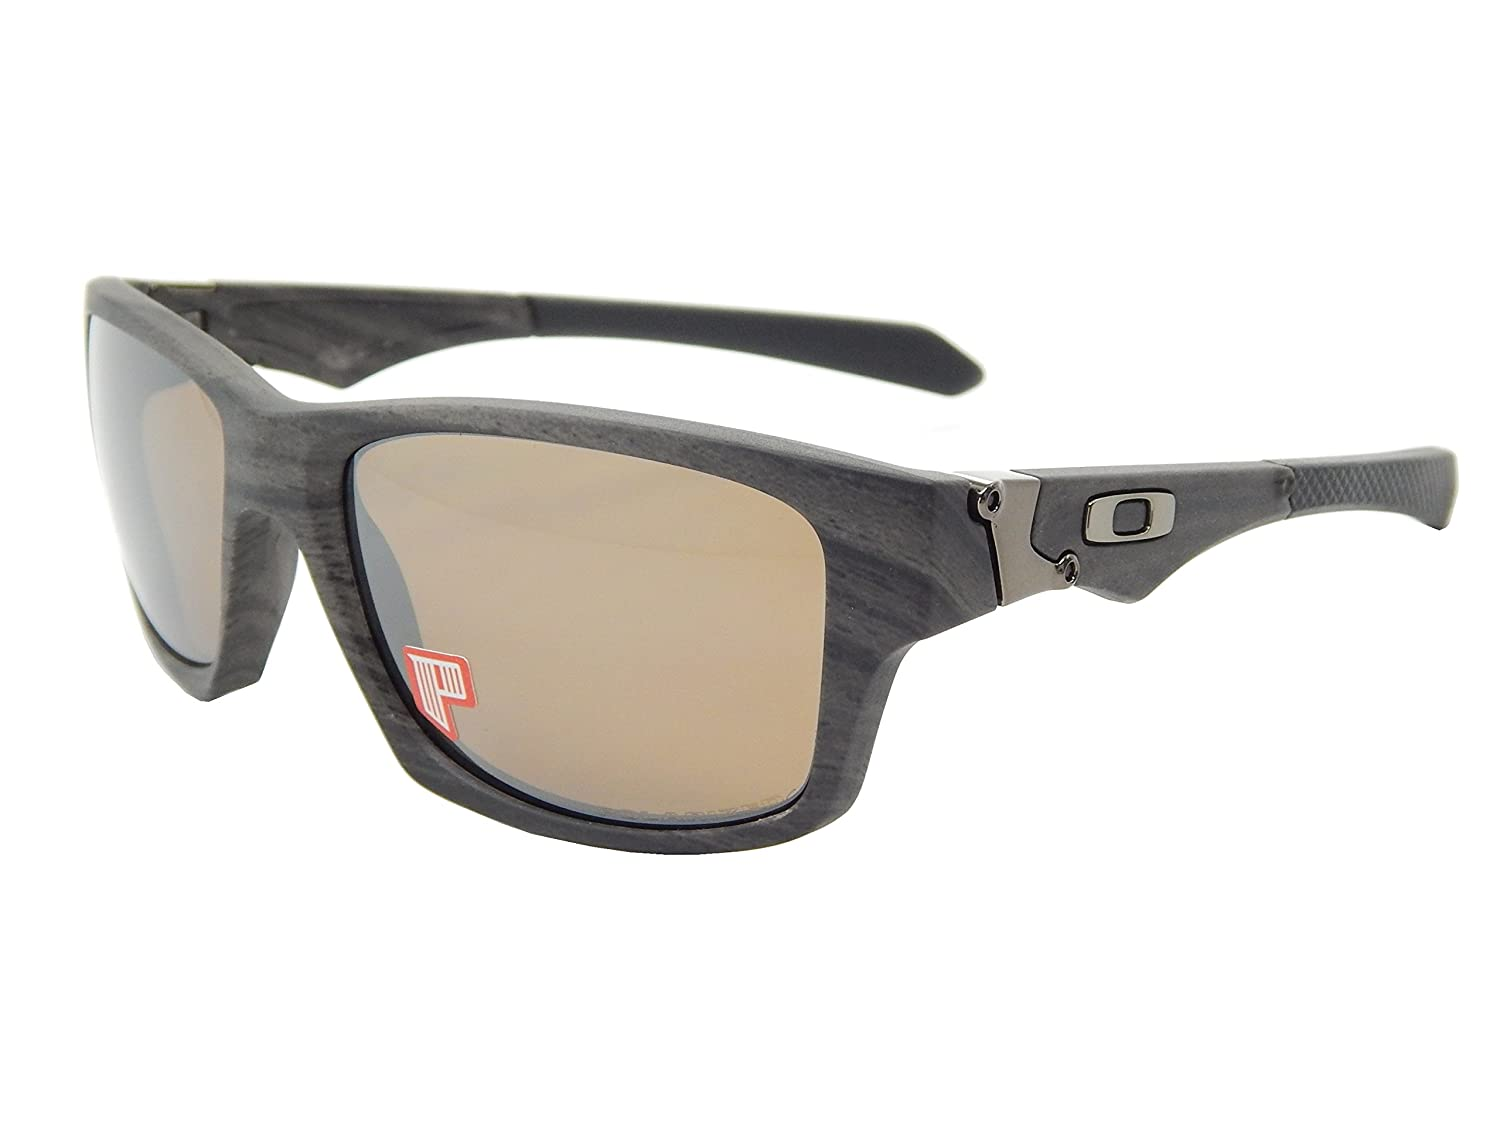 93ba911078 Oakley Jupiter Squared 9135-07 Woodgrain  Tungsten Iridium Polarized  Sunglasses  Amazon.ca  Sports   Outdoors